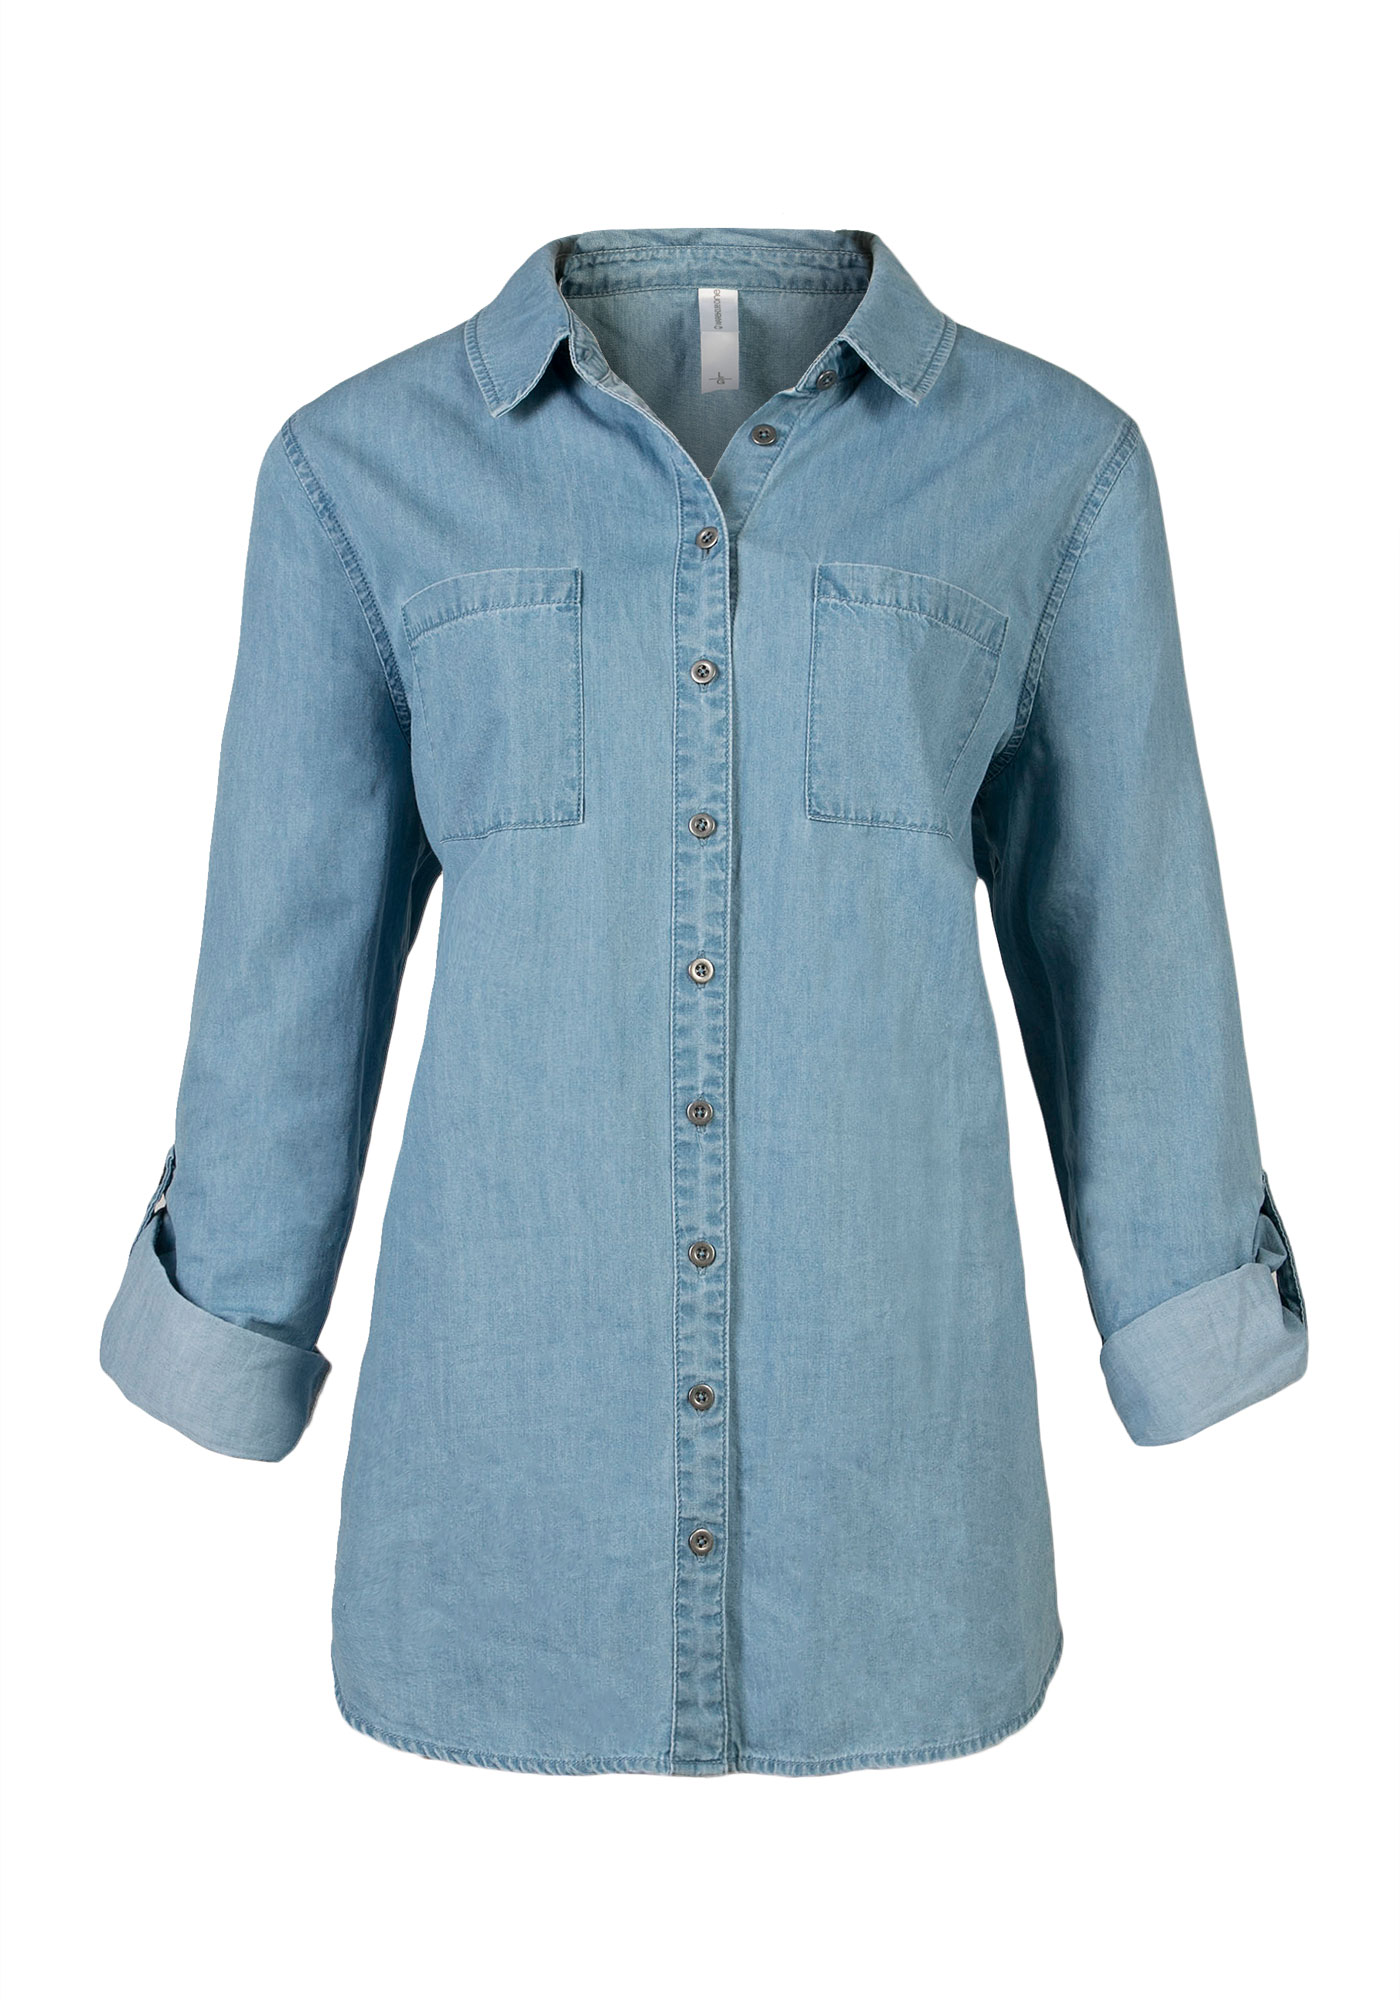 Shop for womens chambray shirt at hereffil53.cf Free Shipping. Free Returns. All the time.